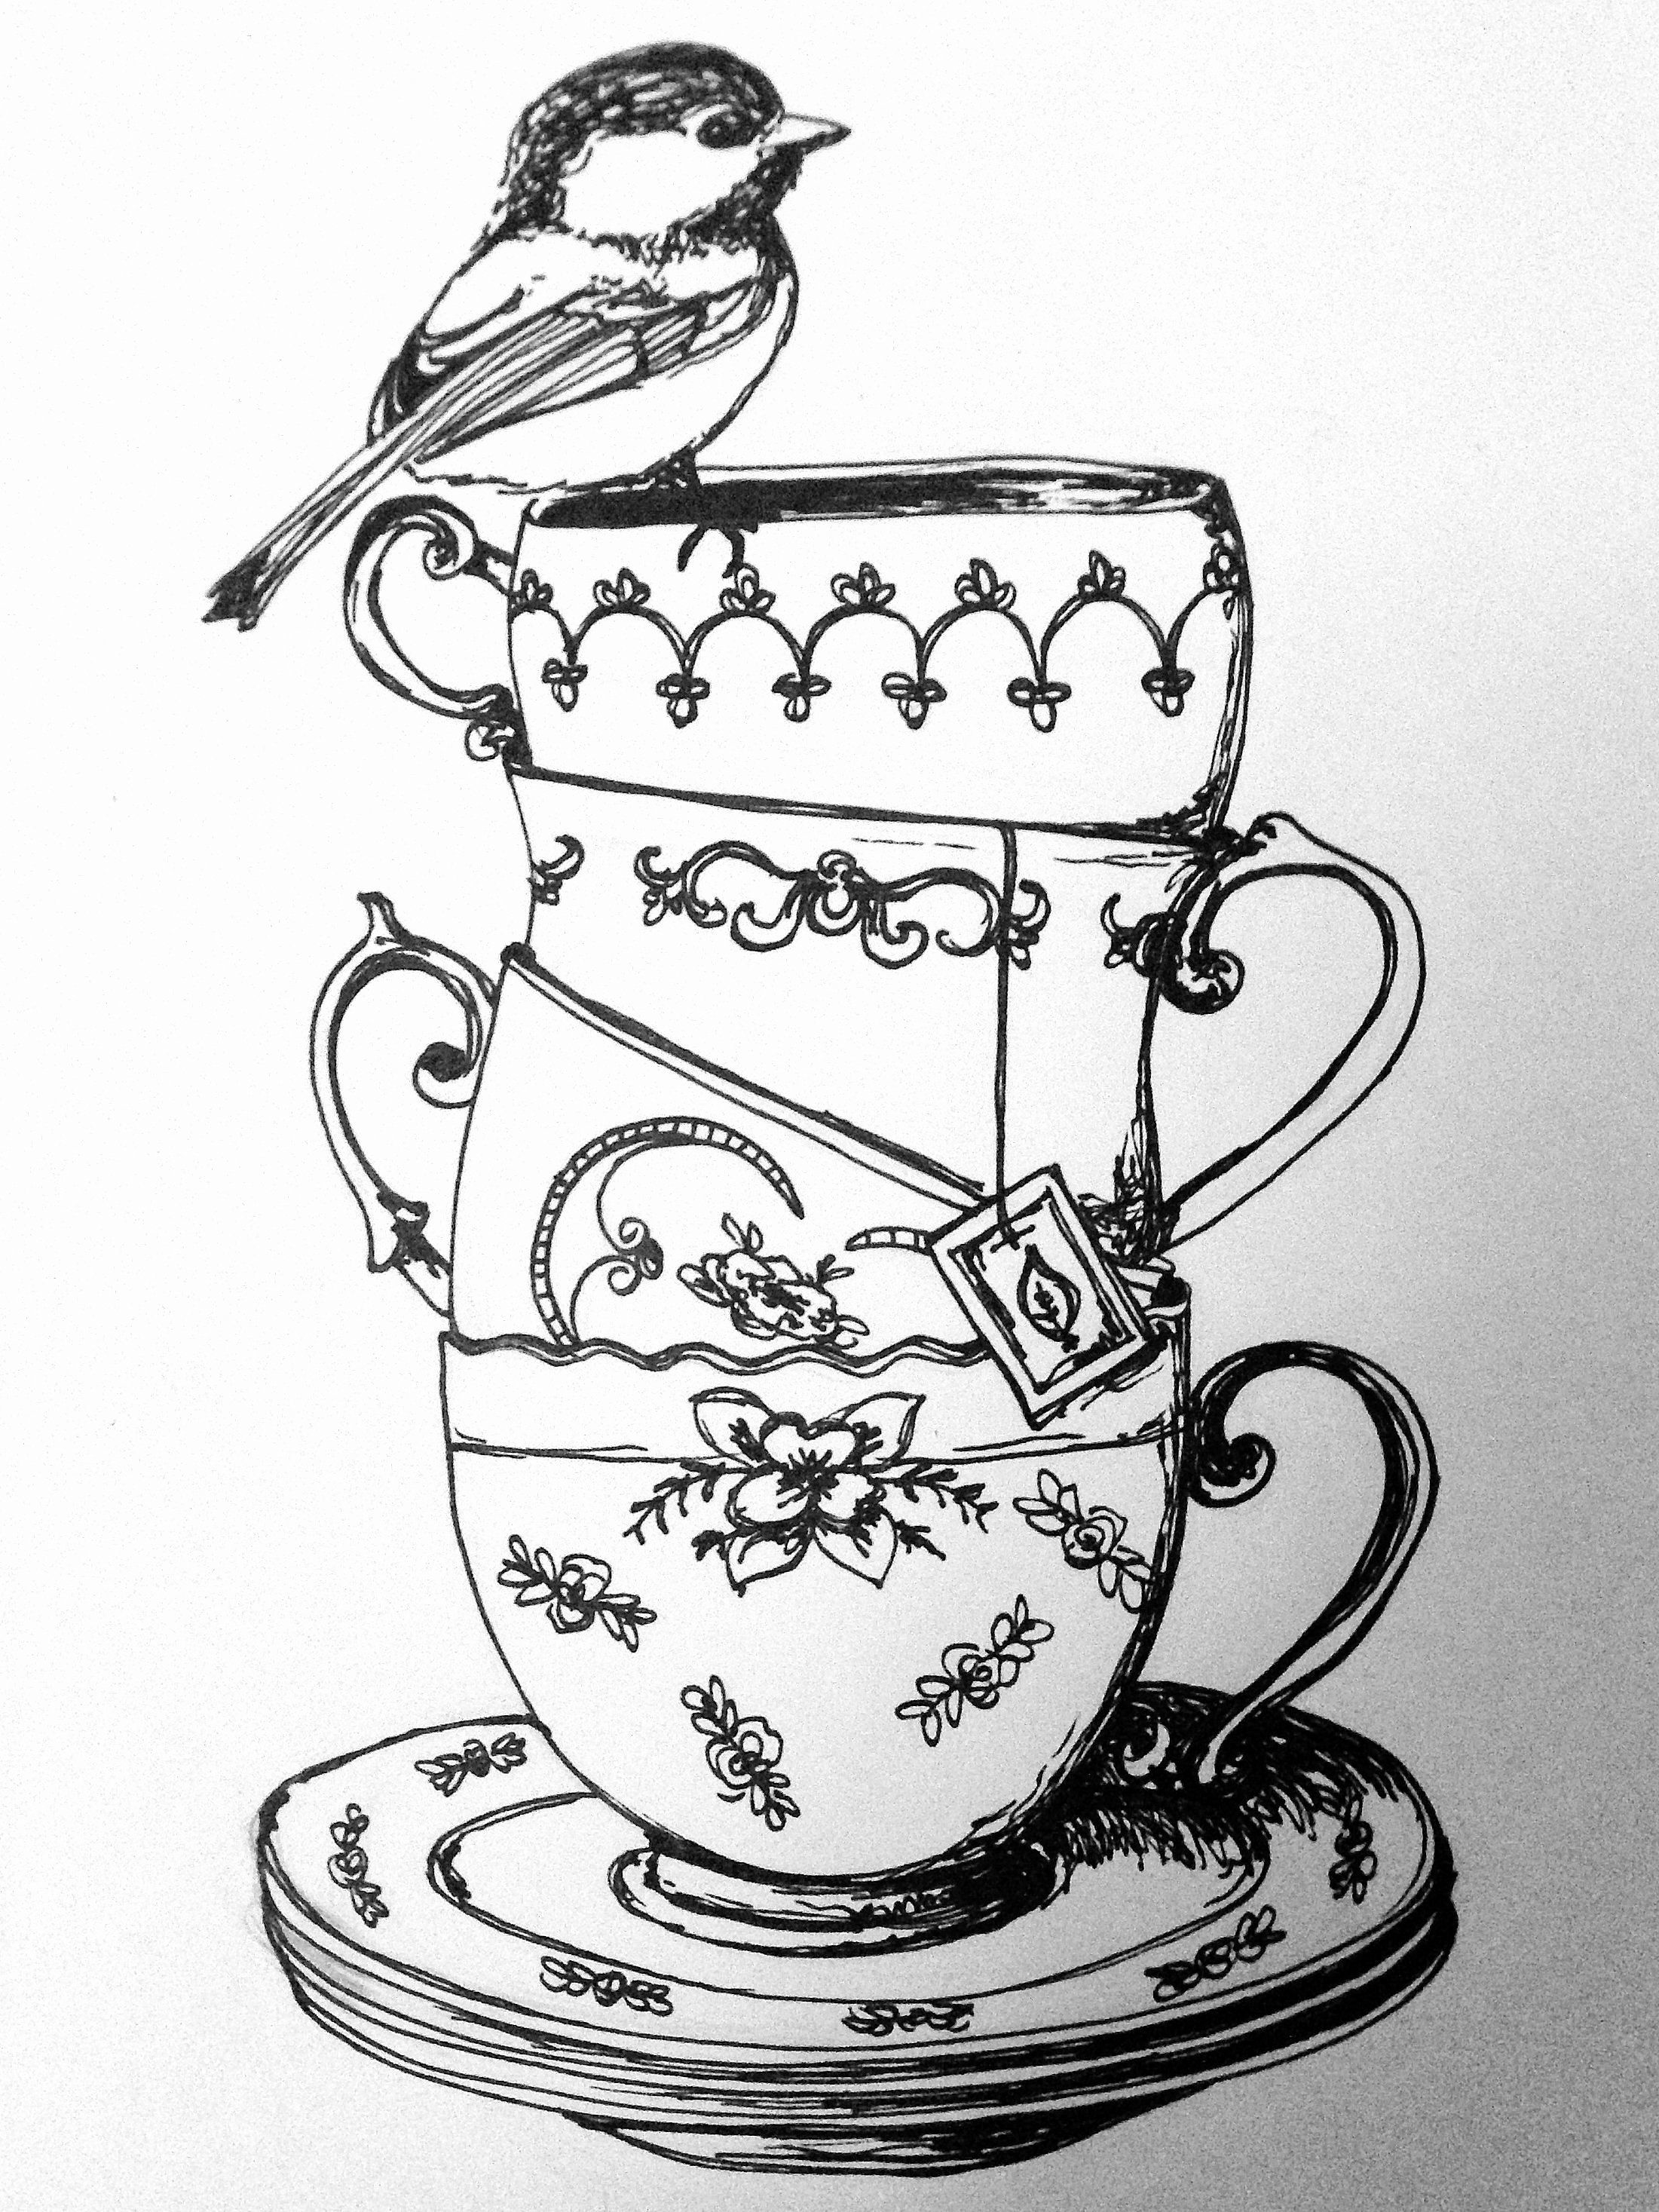 tea cup coloring page tea sets drawing and coloring cup teapot toy learn tea cup coloring page